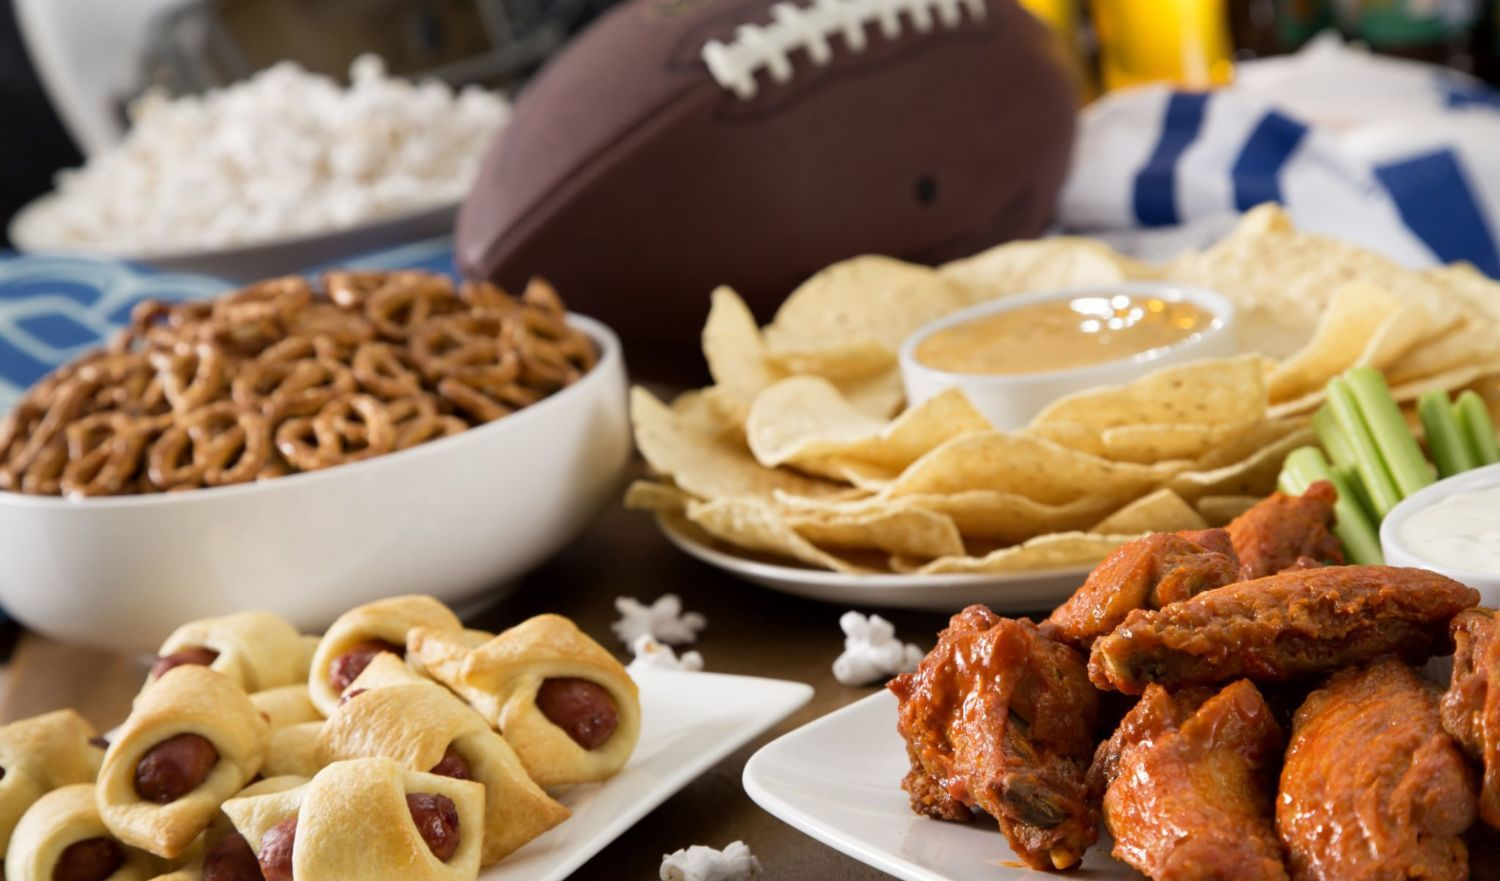 Food faceoff 10 classic vs healthy recipes for the big game view larger image forumfinder Images